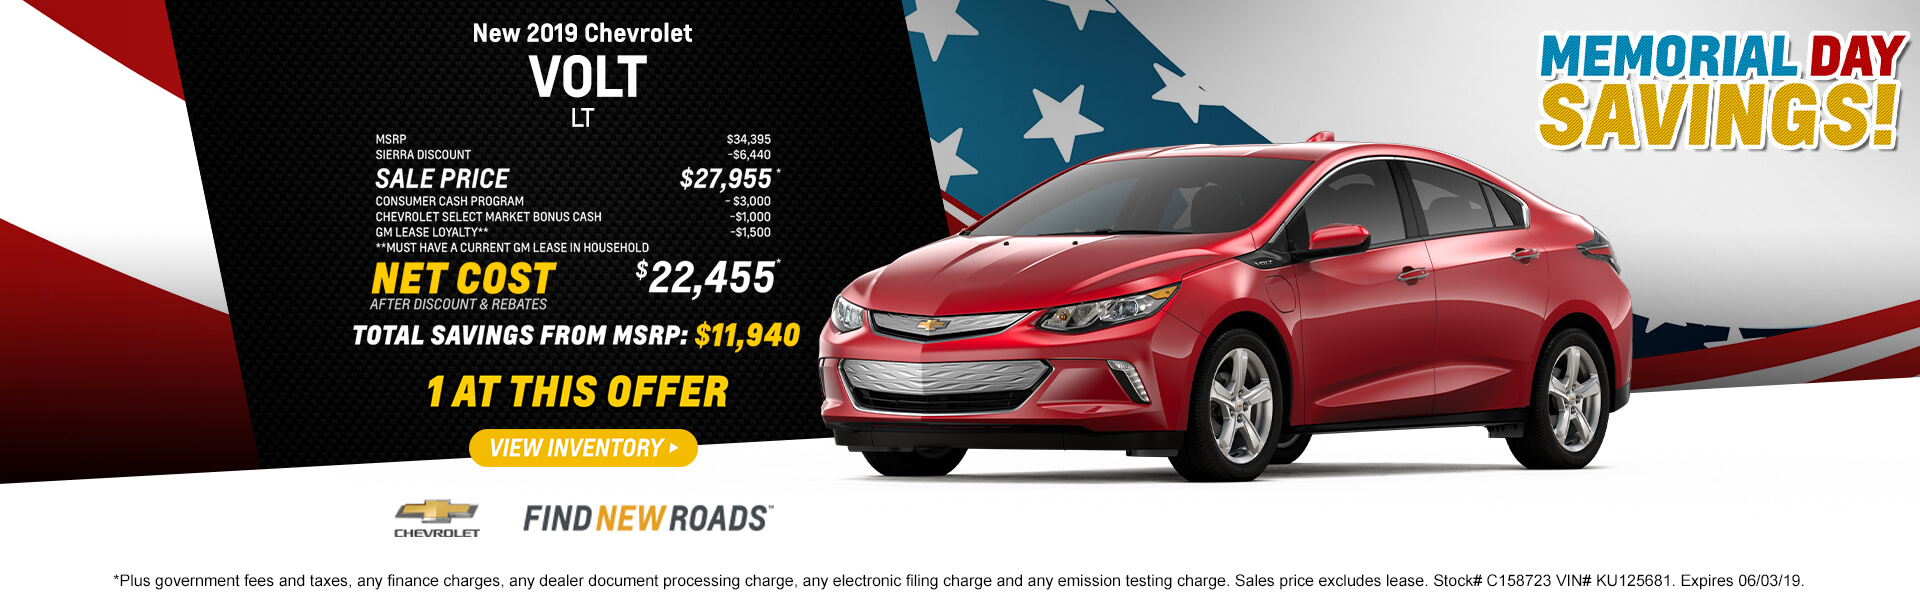 2019 CHEVROLET Volt LT   MSRP $34,395 SIERRA DISCOUNT - $6,440 SALE PRICE $27,955* CONSUMER CASH PROGRAM - $3,000 CHEVROLET SELECT MARKET BONUS CASH -$1,000 GM LEASE LOYALTY** -$1,500 **Must have a current GM lease in household NET COST  AFTER DISCOUNT & REBATES $22,455*  Total Savings from MSRP $11,940  1 AT THIS OFFER  *Plus government fees and taxes, any finance charges, any dealer document processing charge, any electronic filing charge and any emission testing charge. Sales price excludes lease. Stock# C158723 VIN# KU125681. Expires 06/03/19.